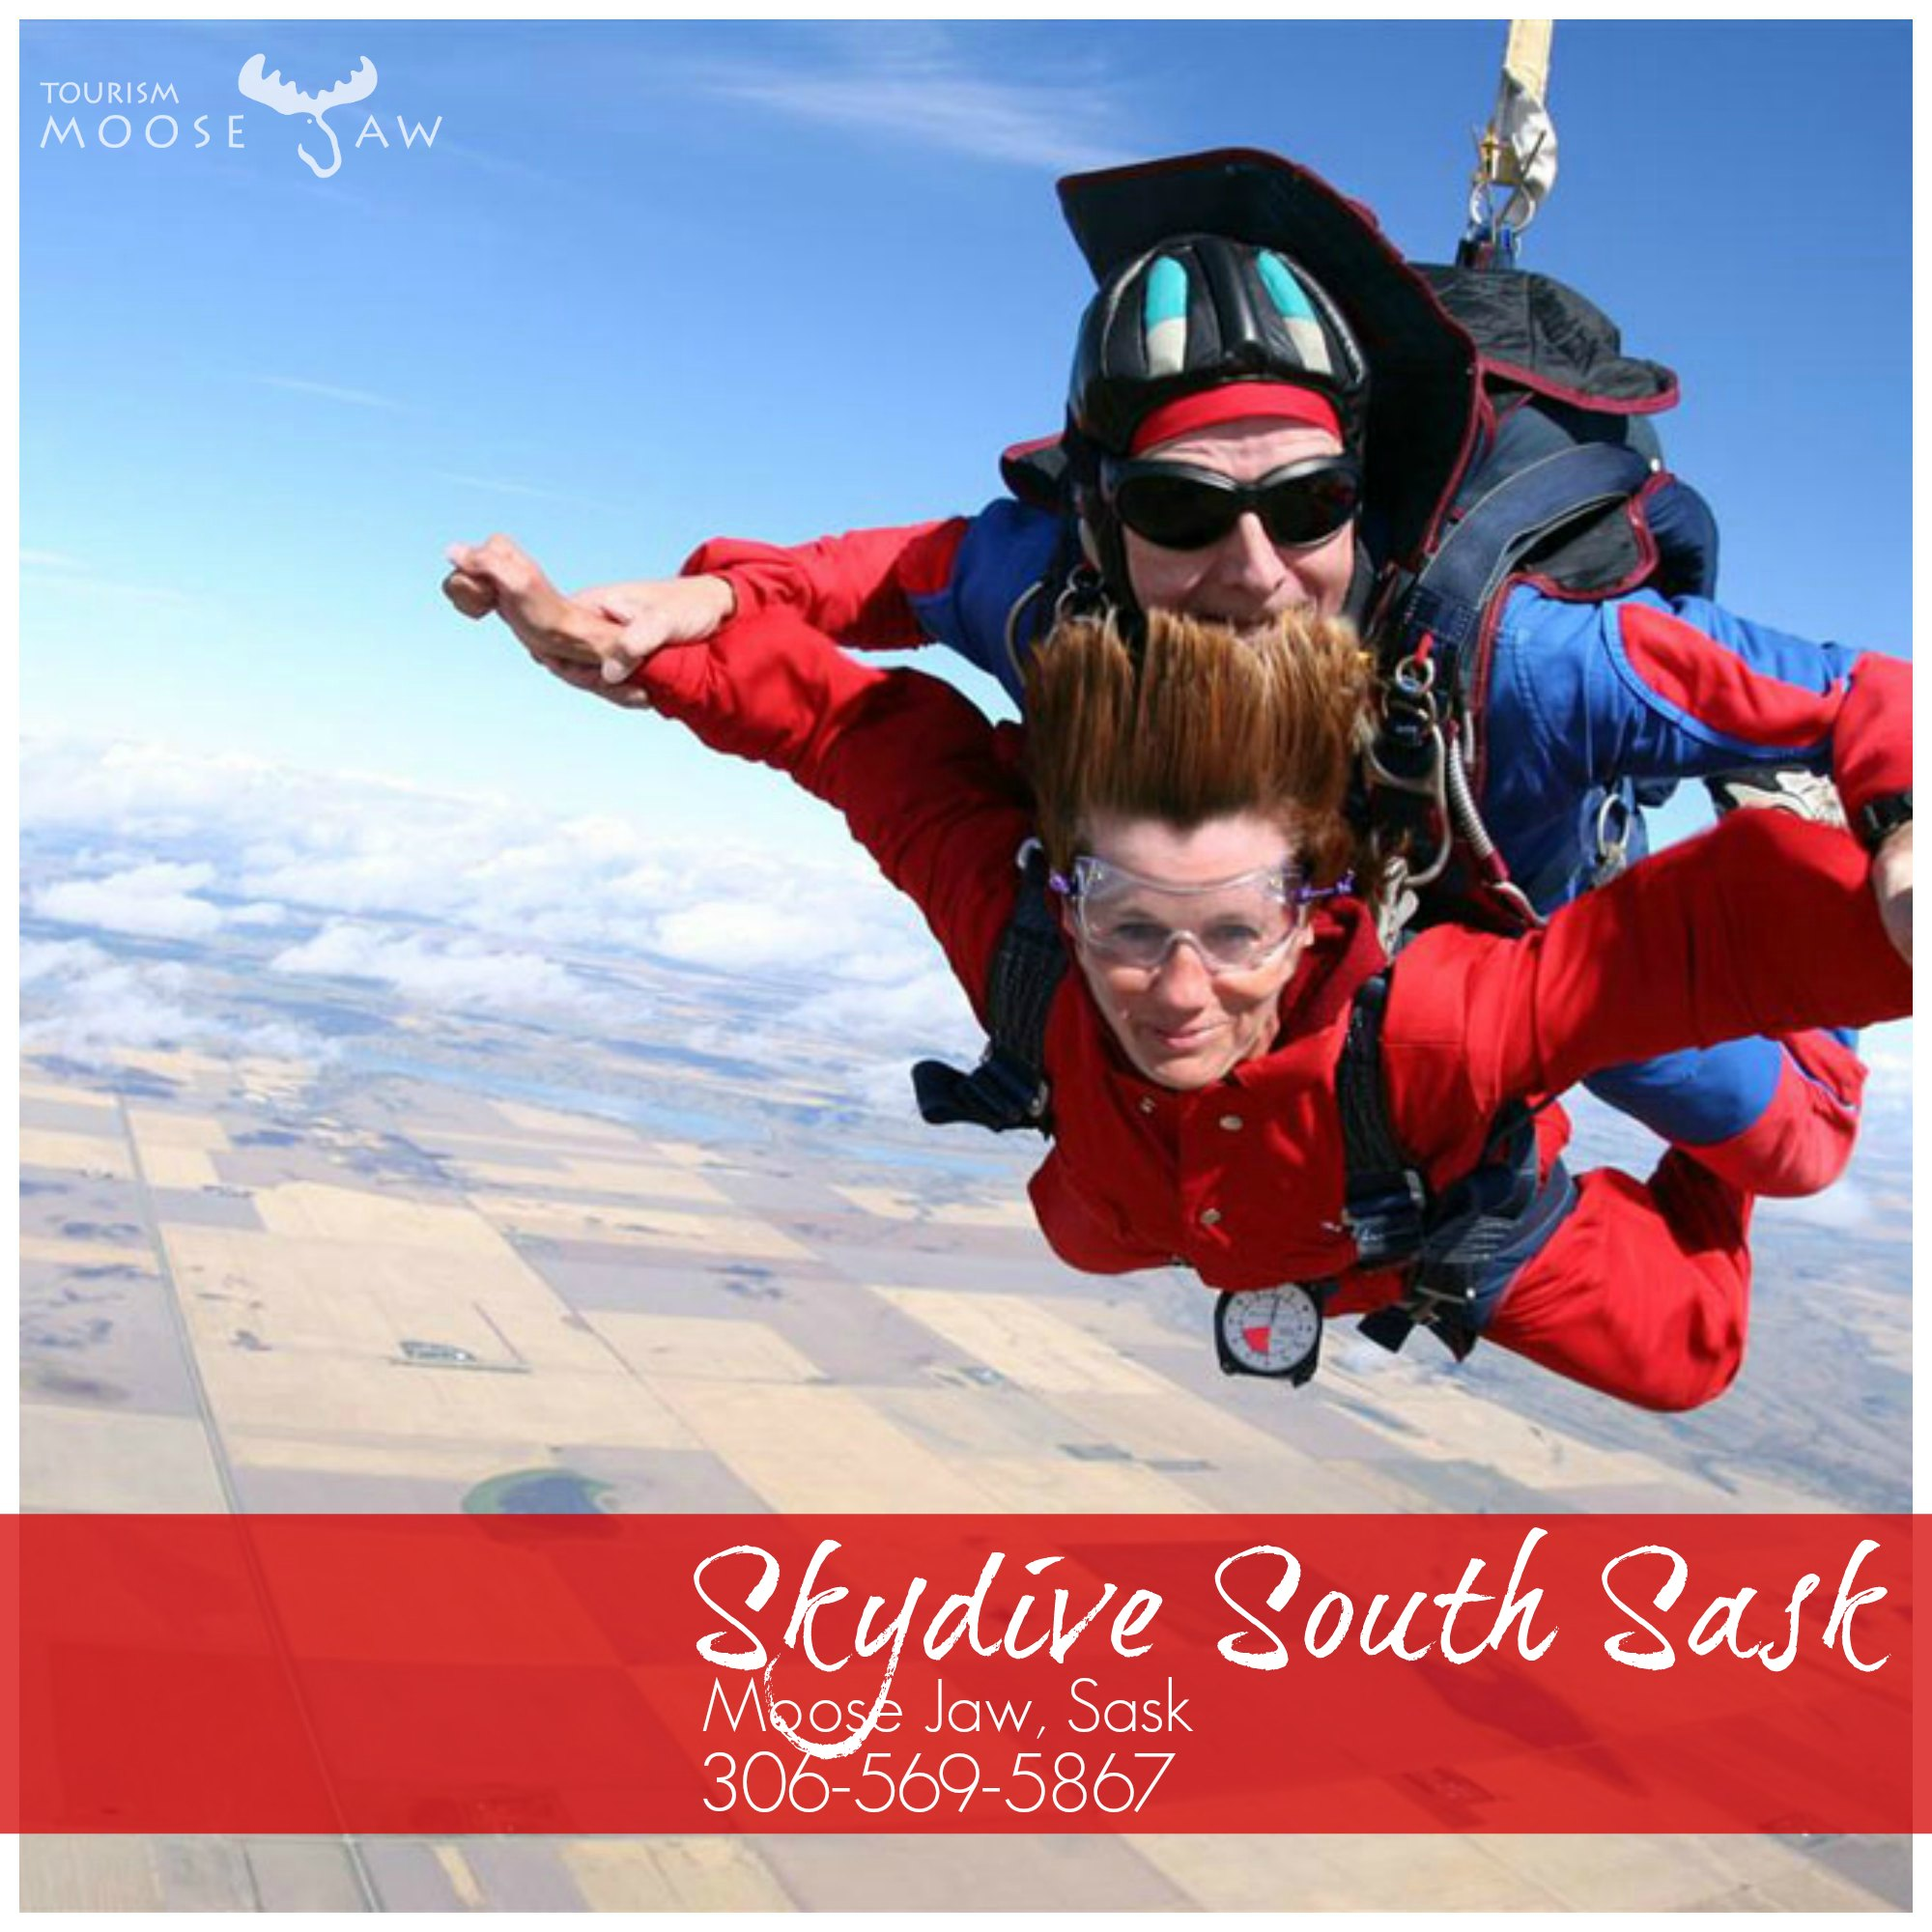 Skydive South Sask.jpg